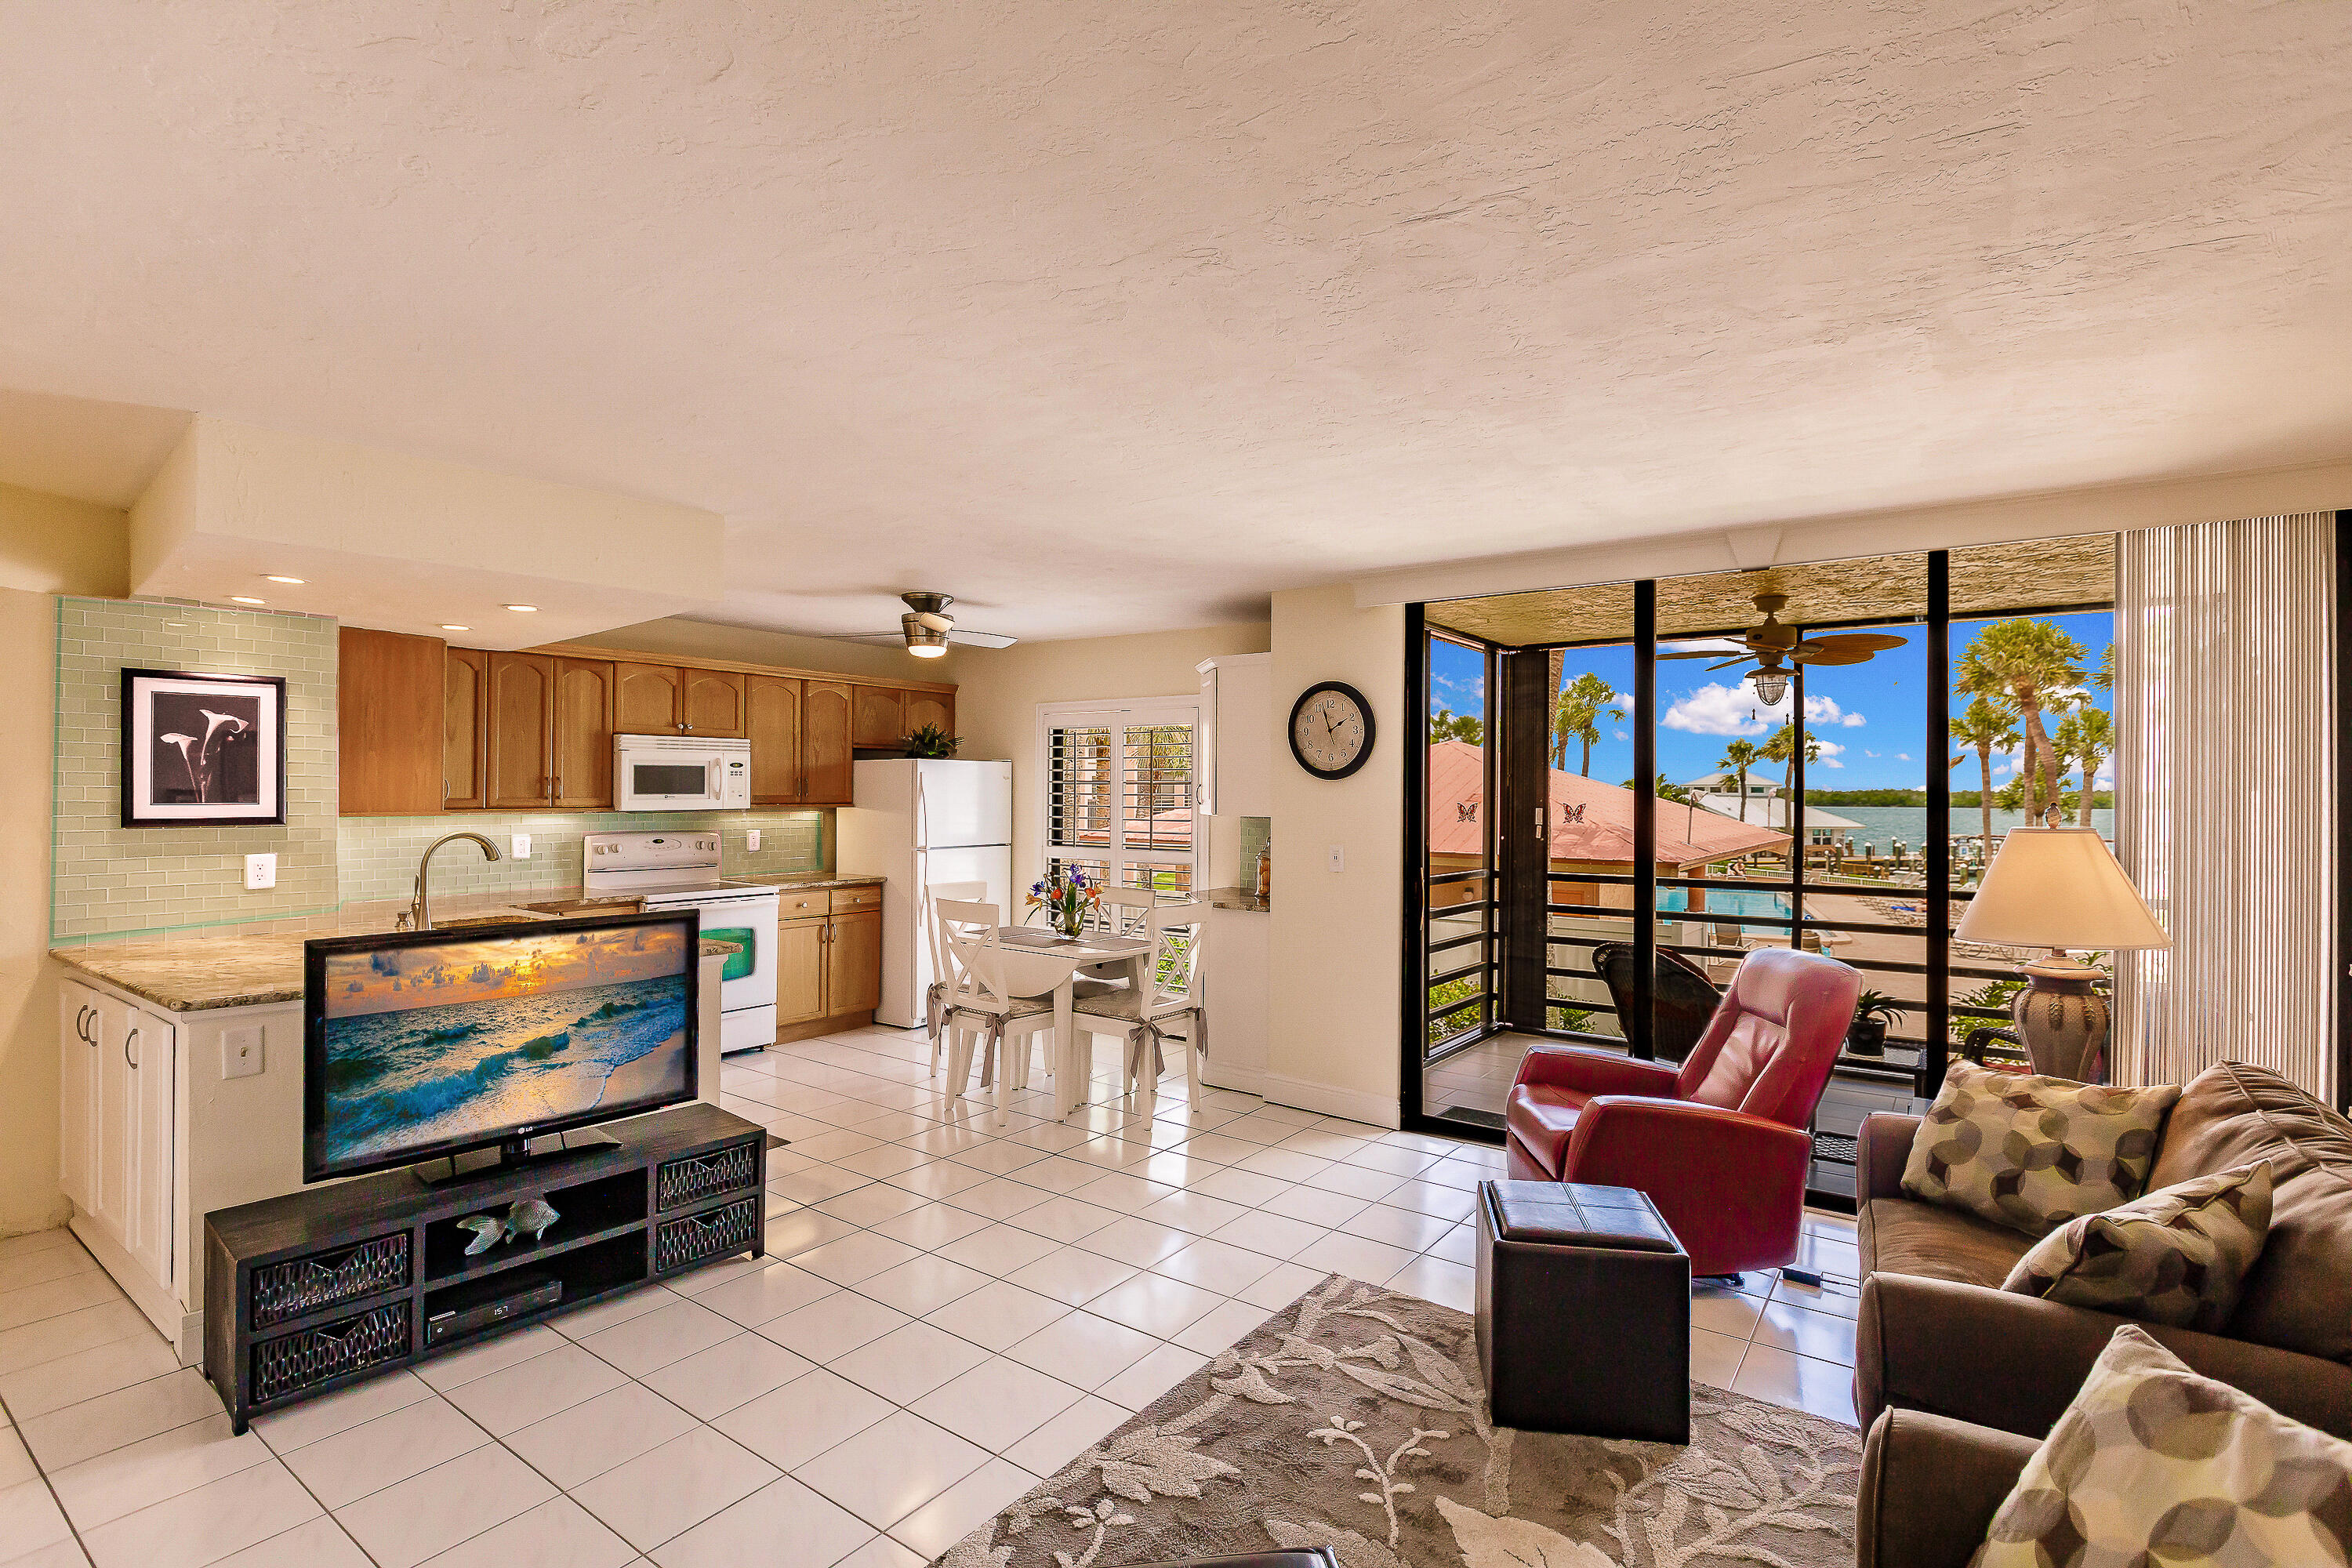 New listing here at Riverside Club, a jewel of Marco Island! This beautiful condo has brand new carpeting in the bedroom, updated kitchen and bath, offers a full size washer and dryer, and hurrican shutters. Watch the sun rise as it comes up over the Jolly Bridge, follow the dolphins as they play, be amazed at the boat traffic and fish from the piers!  You will never tire of the magnificient wide-water views. Riverside Club's assessments include electric, which is rare to any condo or home owners association. Whether you are looking for a permanent home in Paradise, a seasonal one, or an investment, this is a must see for you! Additionally, you can lease a boat slip for $200/year. Riverside Club is within walking distance to boat and bike rentals and to the ''World Famous Snook Inn--Waterfront Dining'' and many other restaurants and shops. Rose Marina, is less than a mile away, this marina is the launch site for the Key West Express and they offer boat rentals as well.